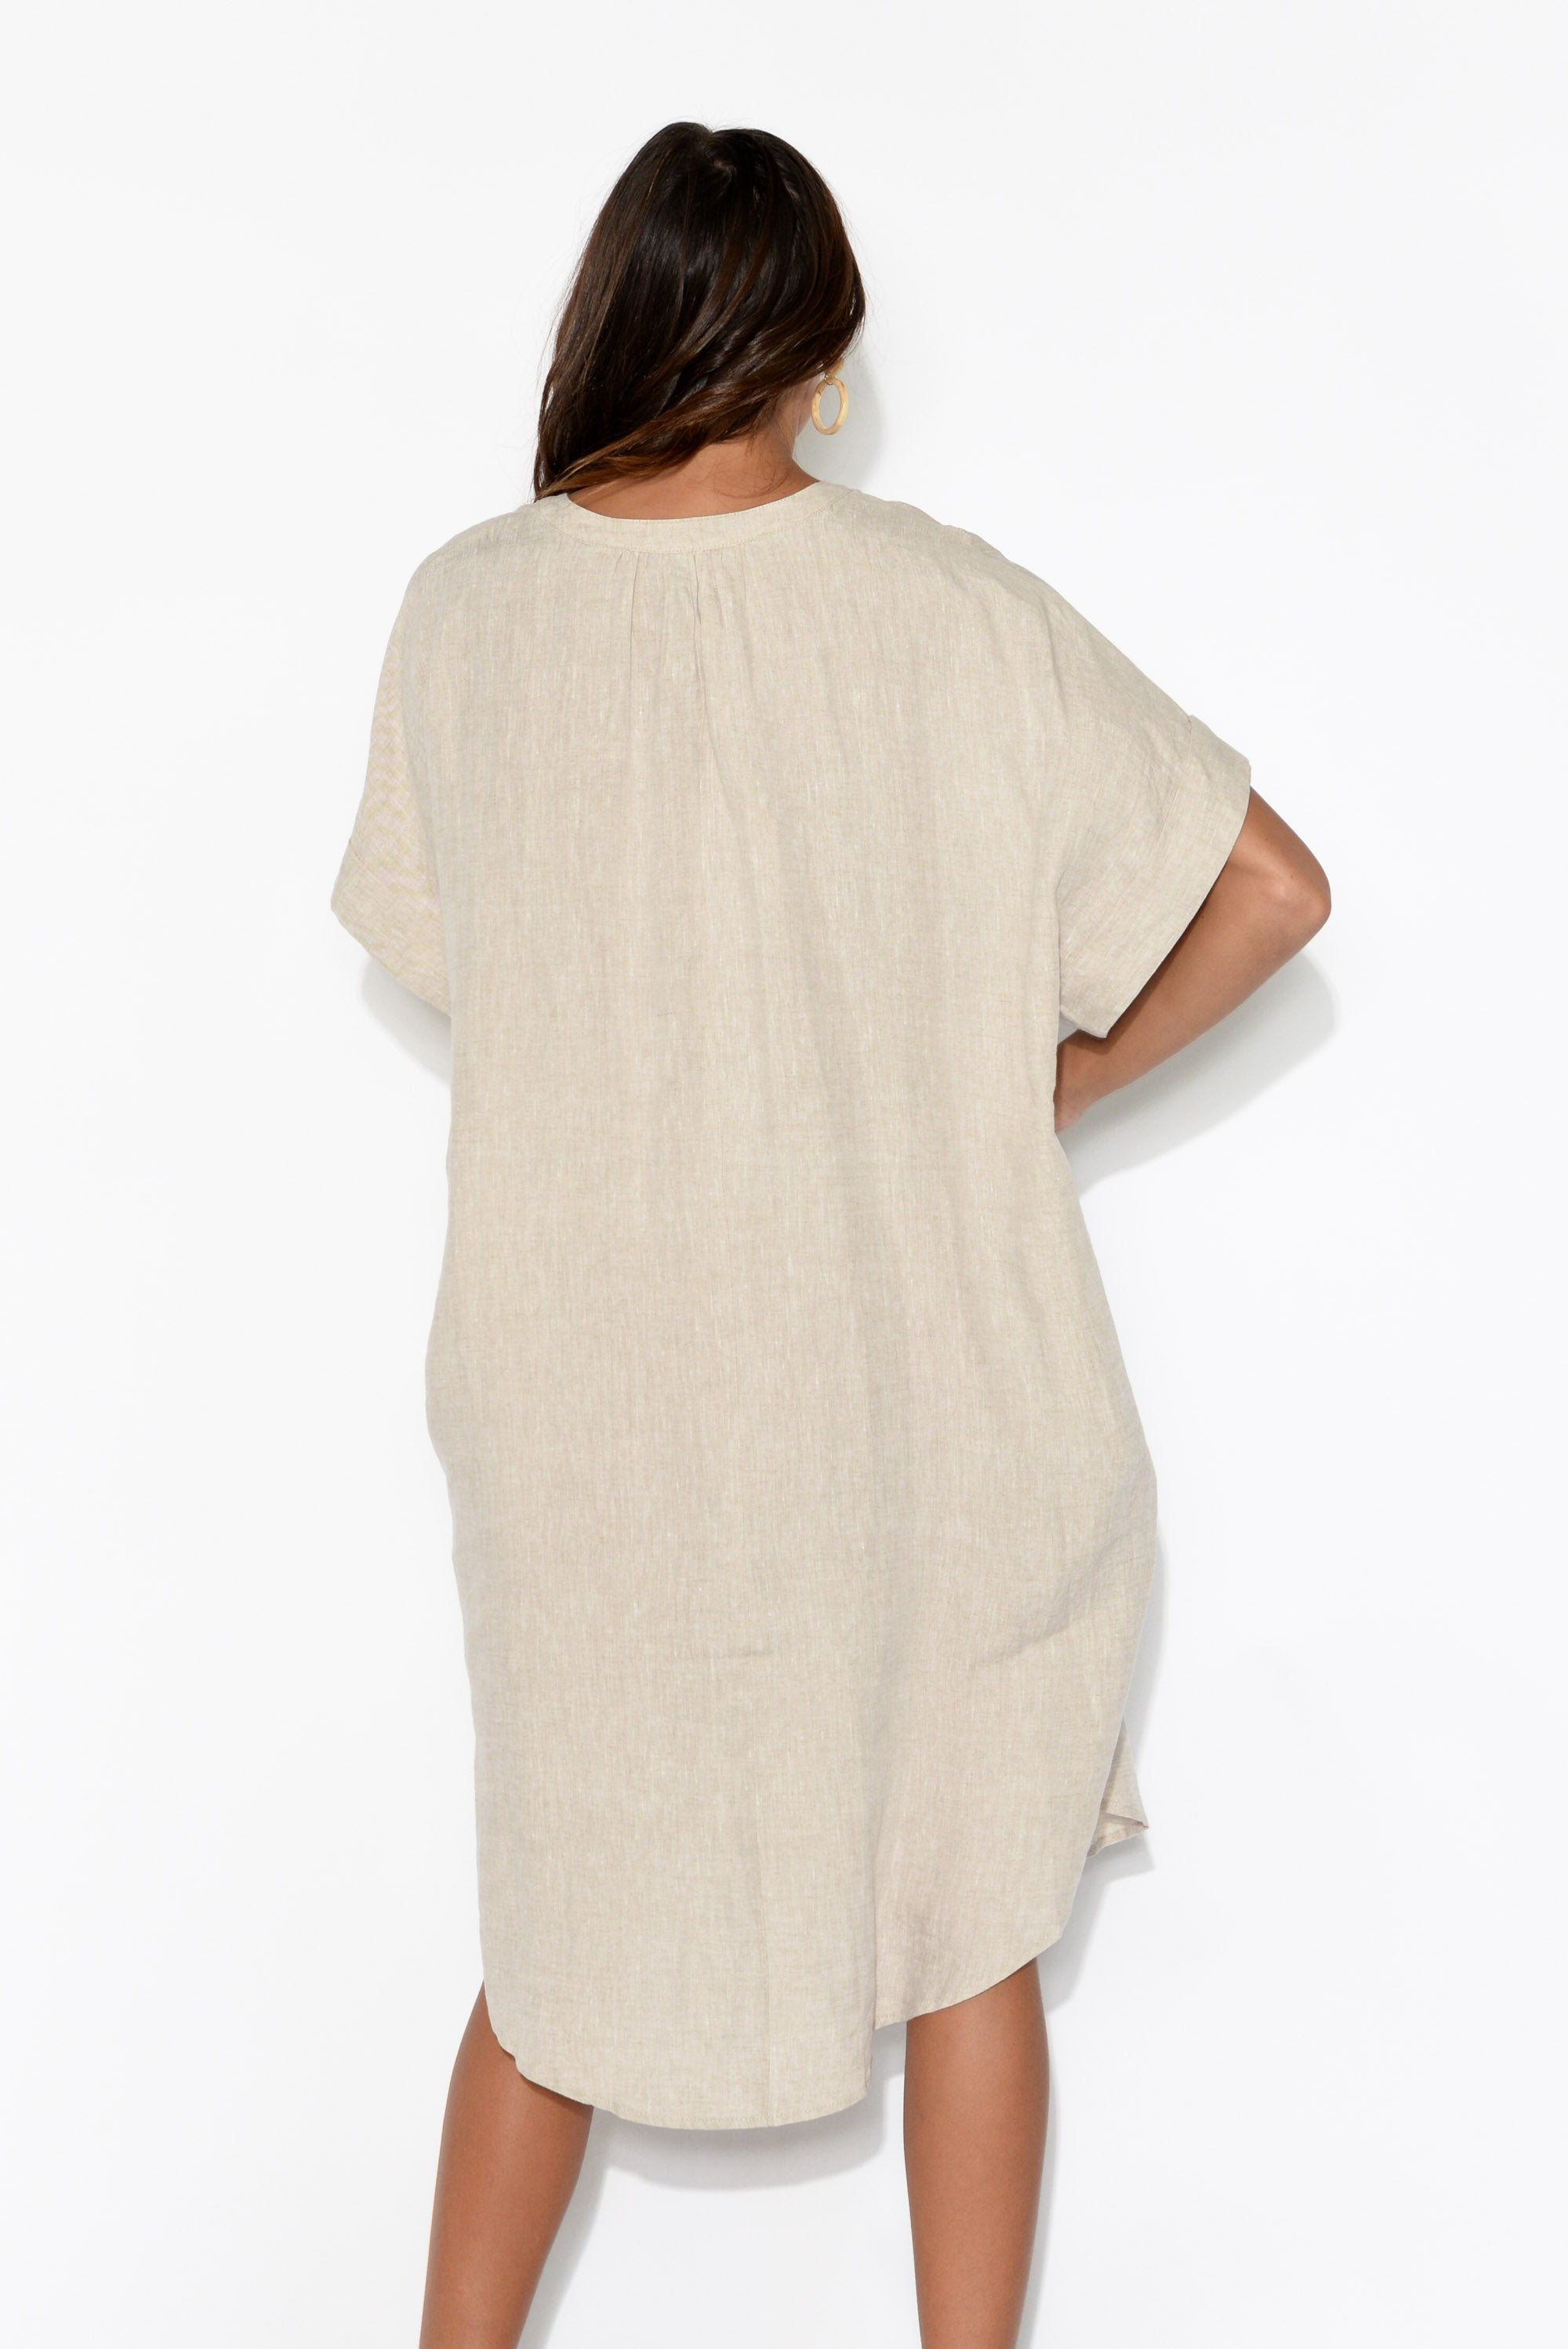 Majorca Beige Linen Shirt Dress